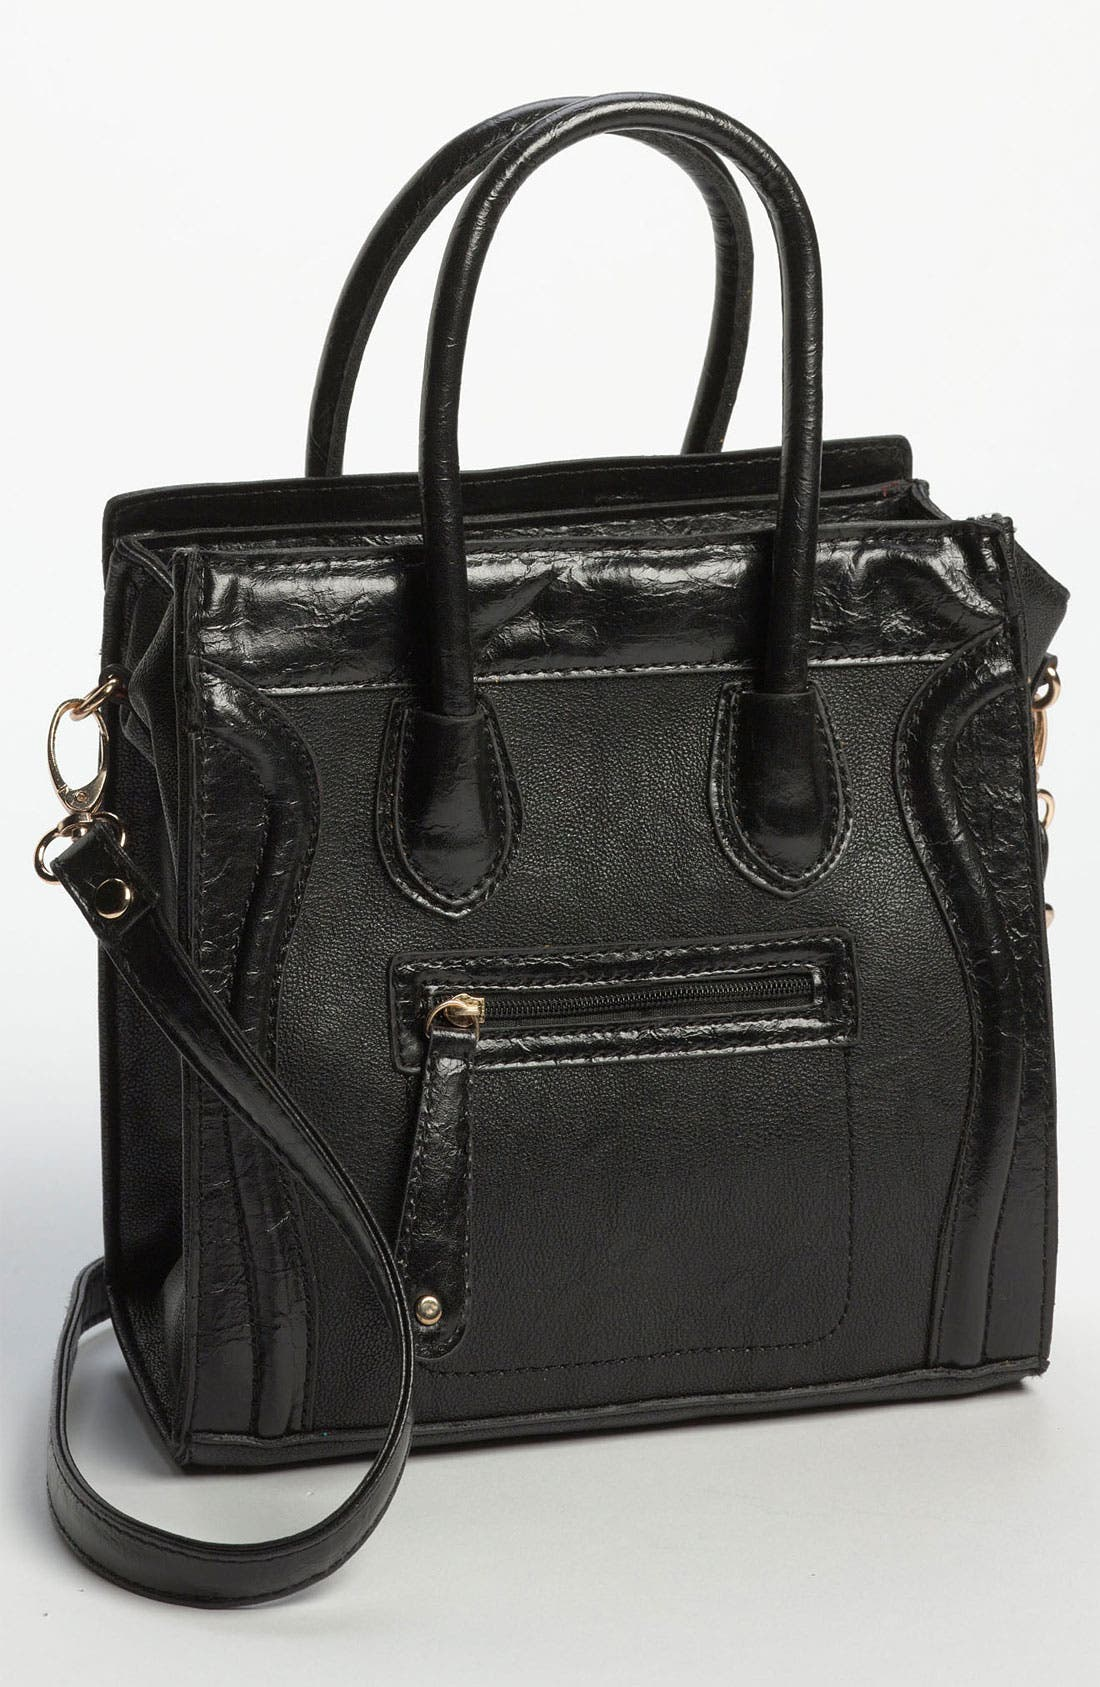 Main Image - Street Level Structured Tote Bag